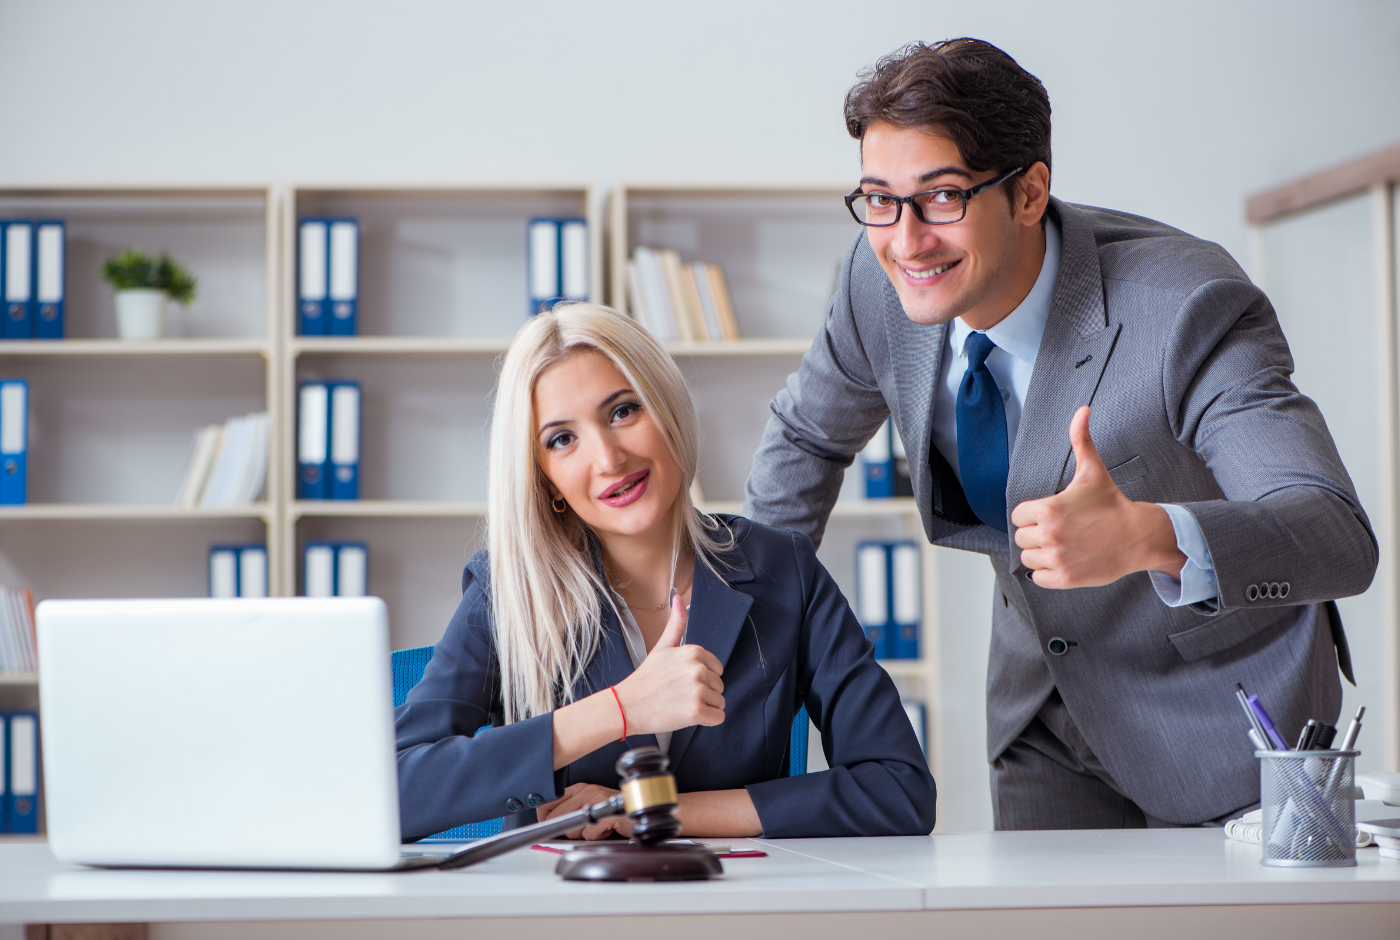 Professional man and woman in business suits with fake smiles at desk with laptop and gavel on it.